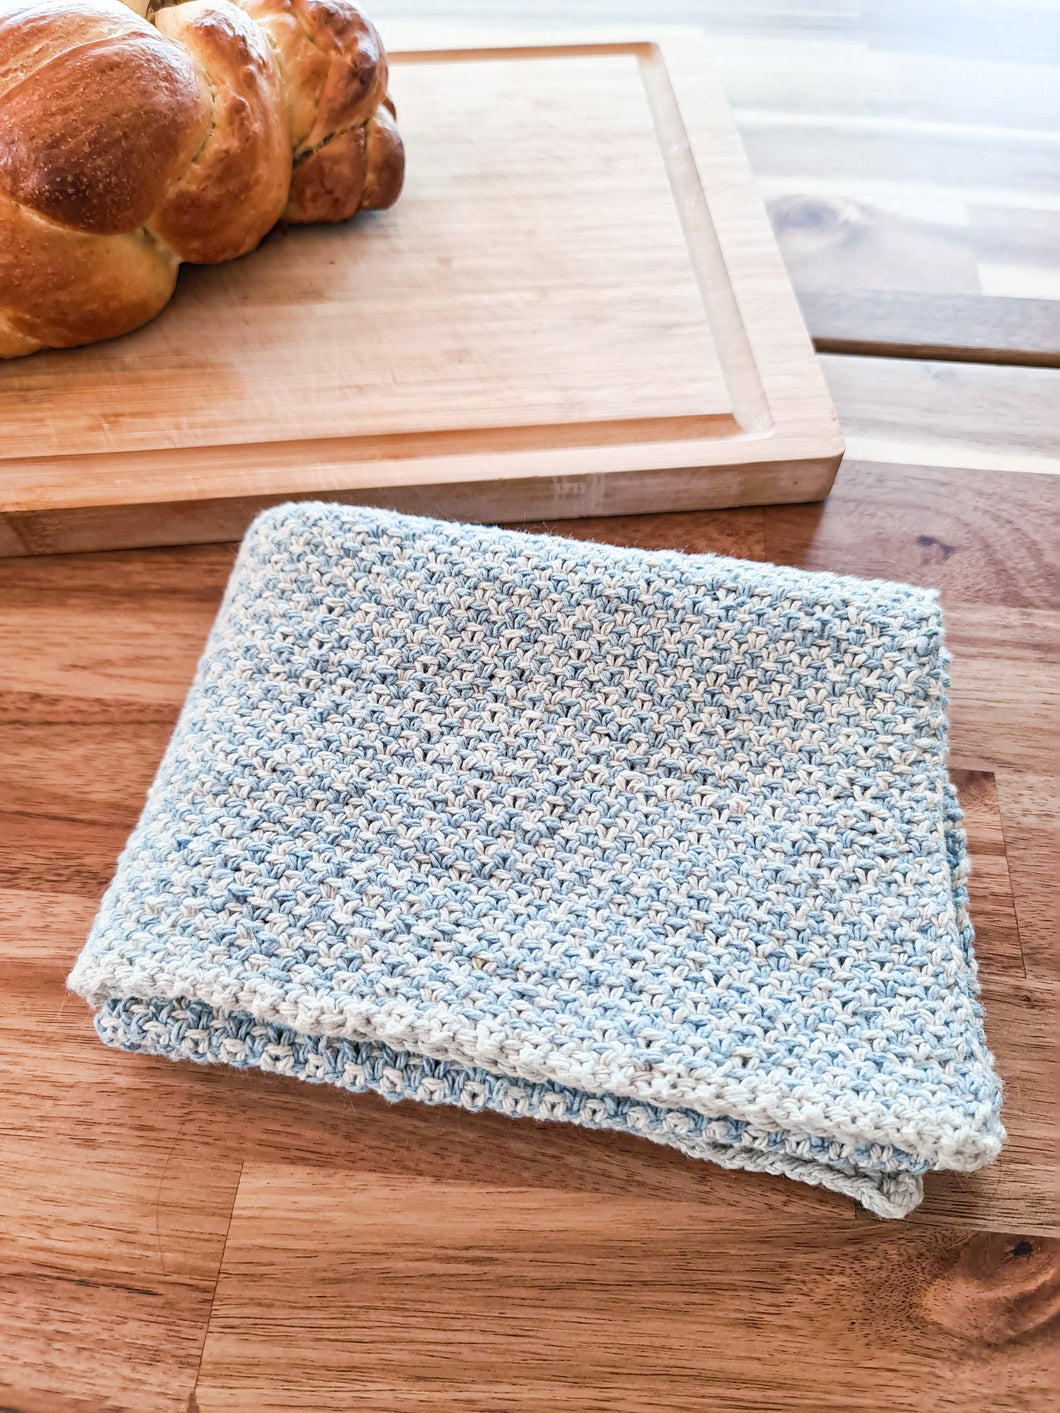 Cottage Tea Towel - Knitting Pattern by SkillfullyTangled